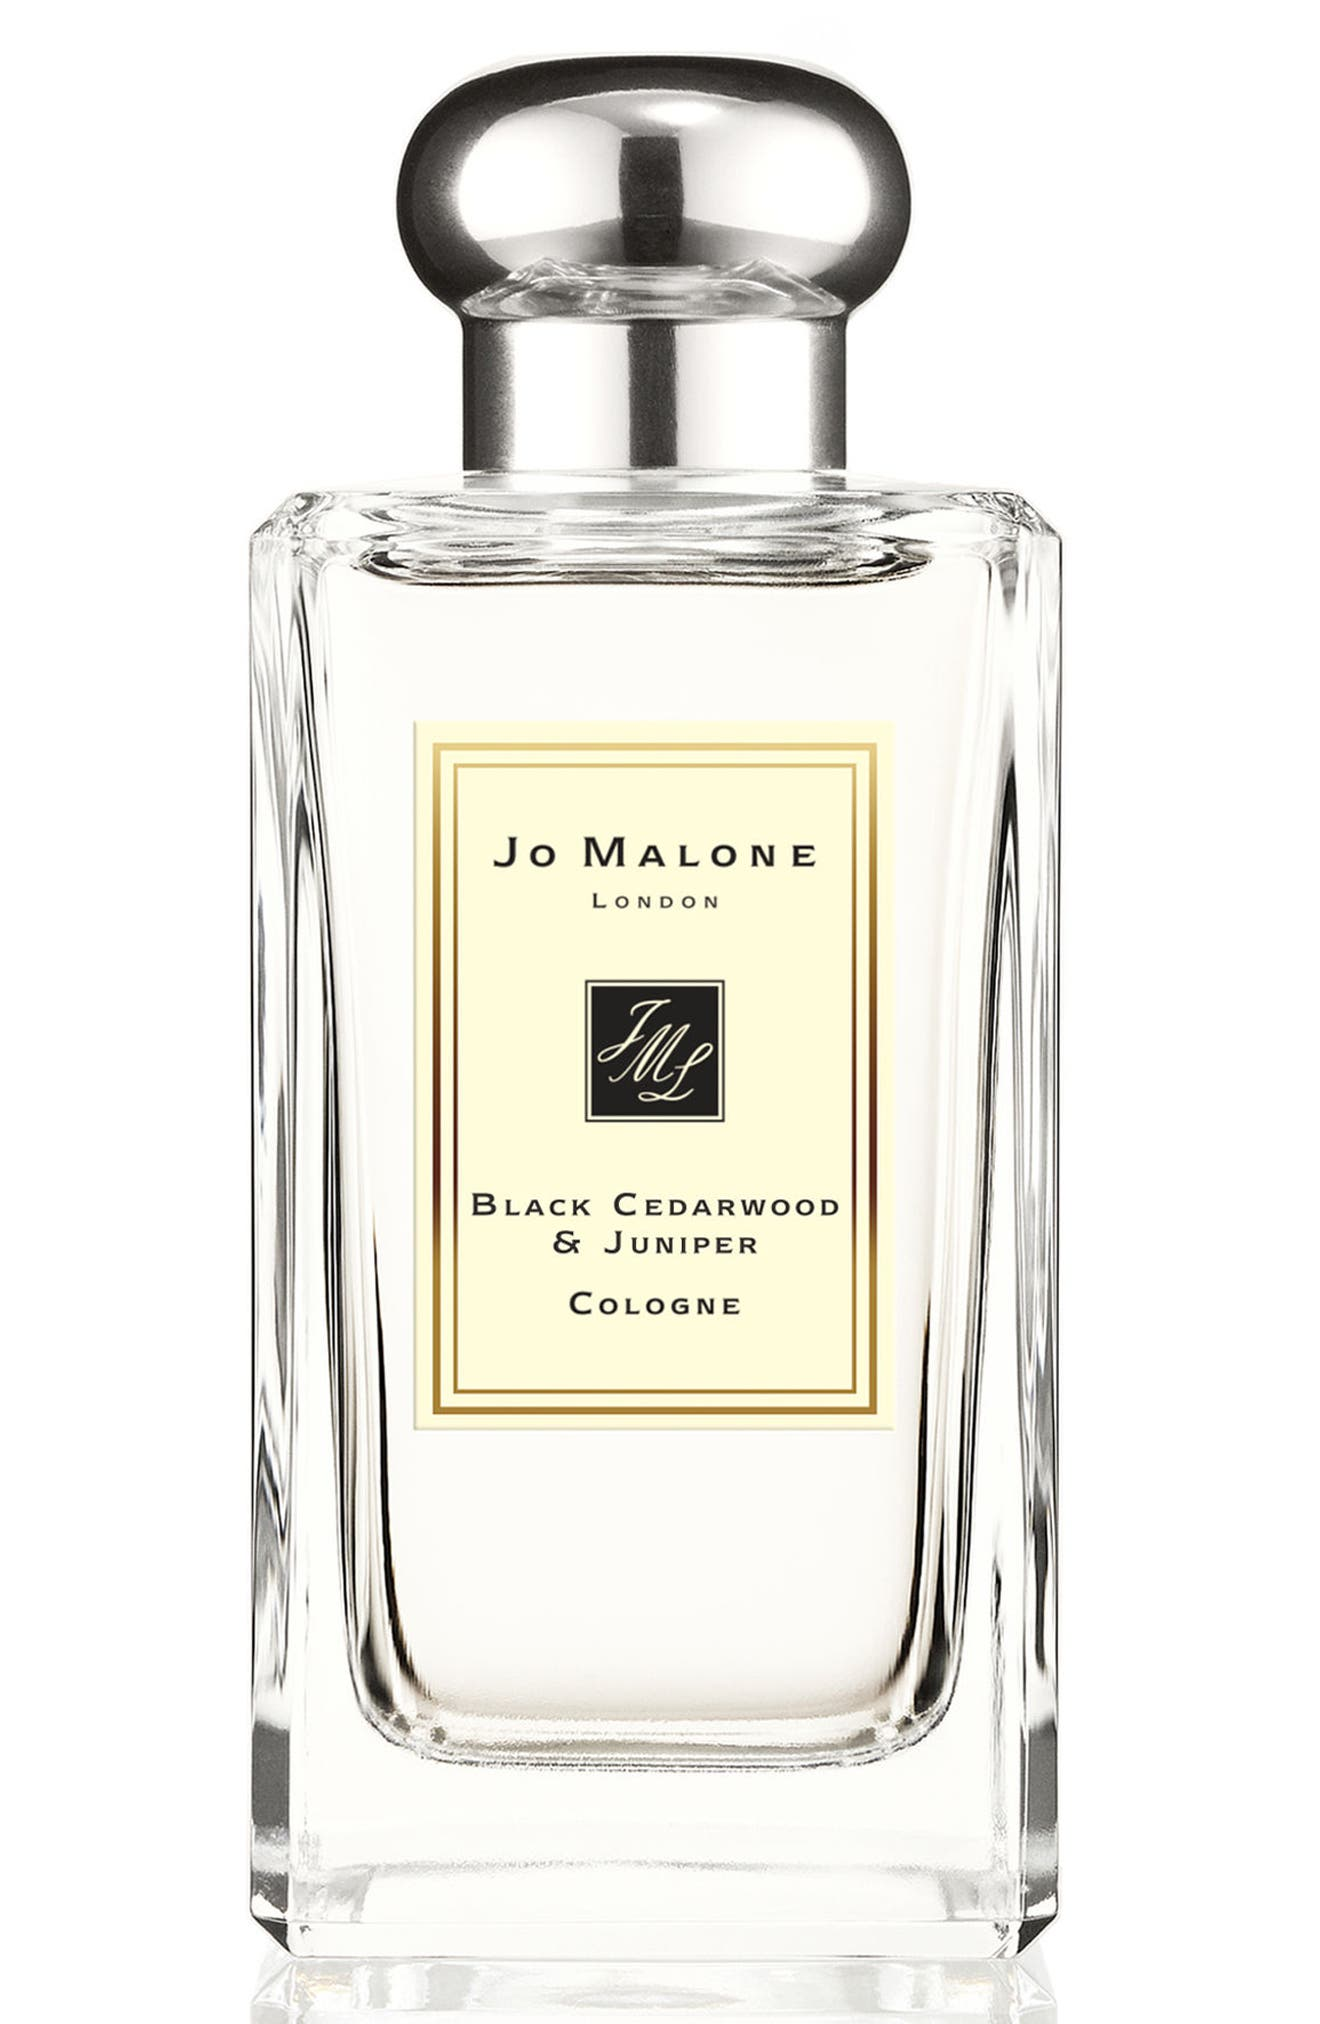 Jo Malone London™ 'Black Cedarwood & Juniper' Cologne (3.4 oz.)